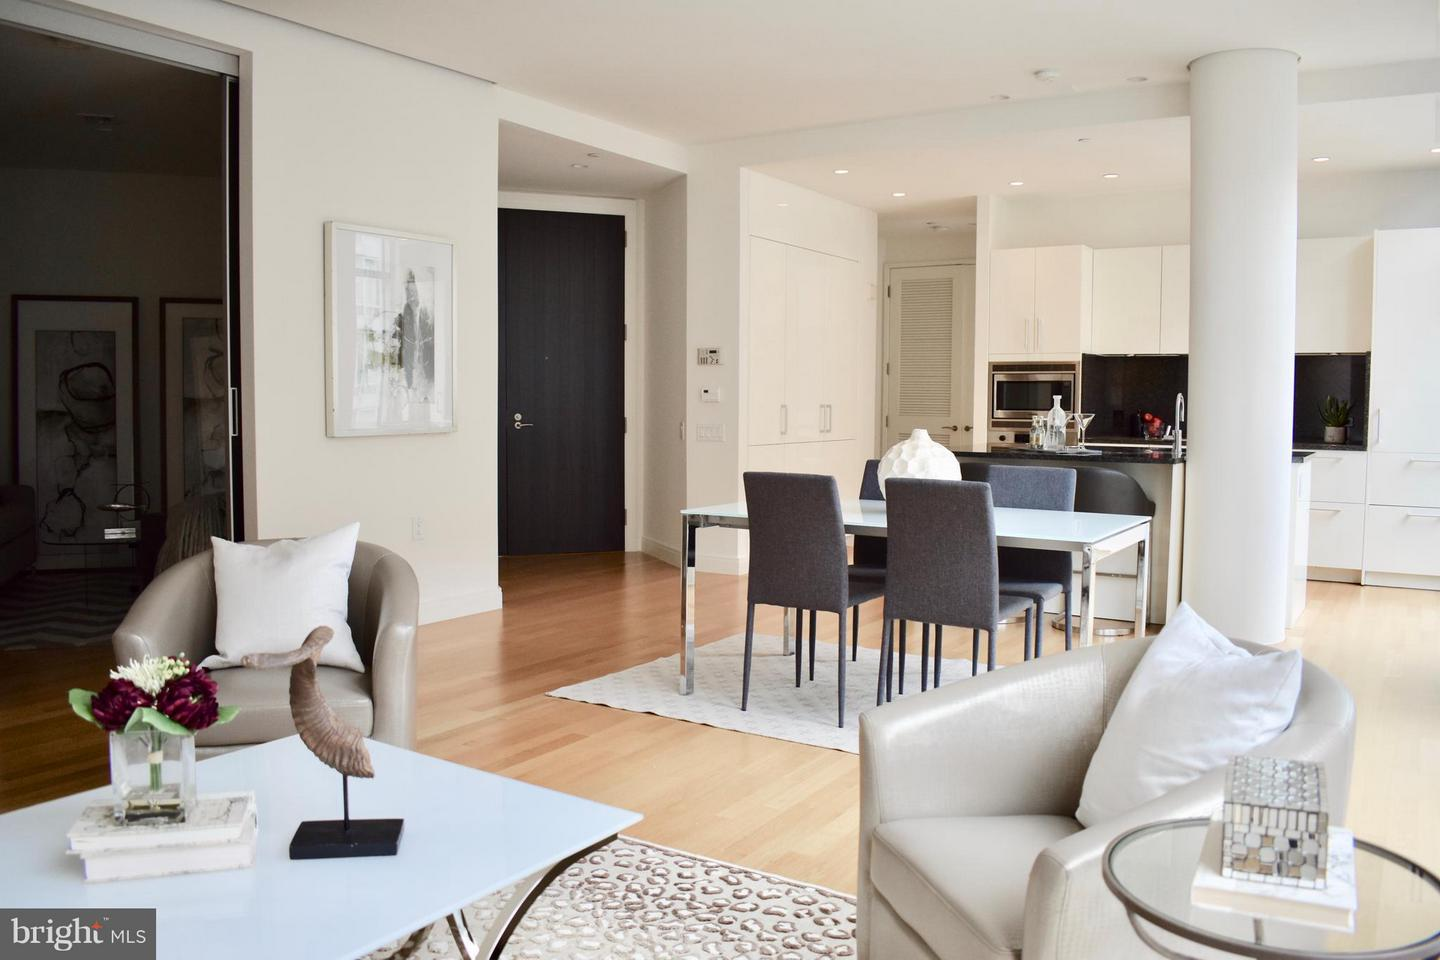 Single Family Home for Sale at 1177 22nd St NW #6-L 1177 22nd St NW #6-L Washington, District Of Columbia 20037 United States